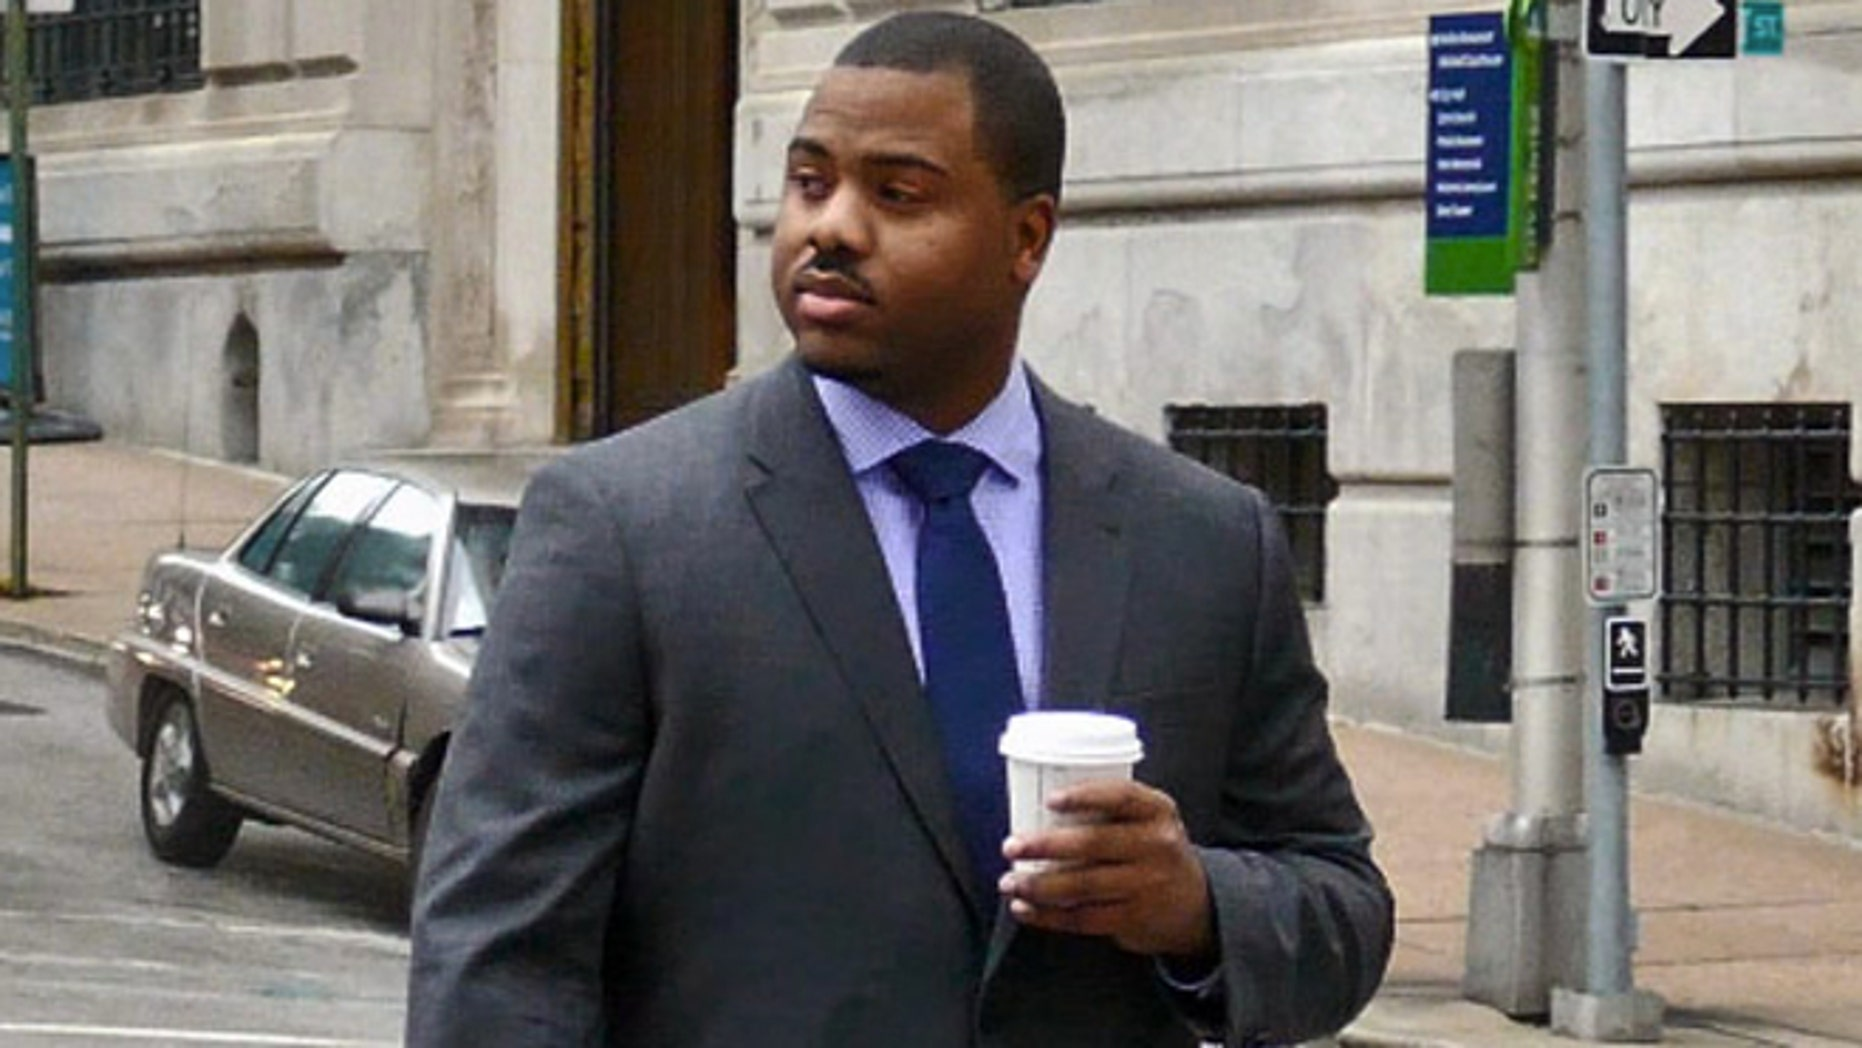 Baltimore City police officer William Porter is one of six Baltimore police officers charged in the death of Freddie Gray.